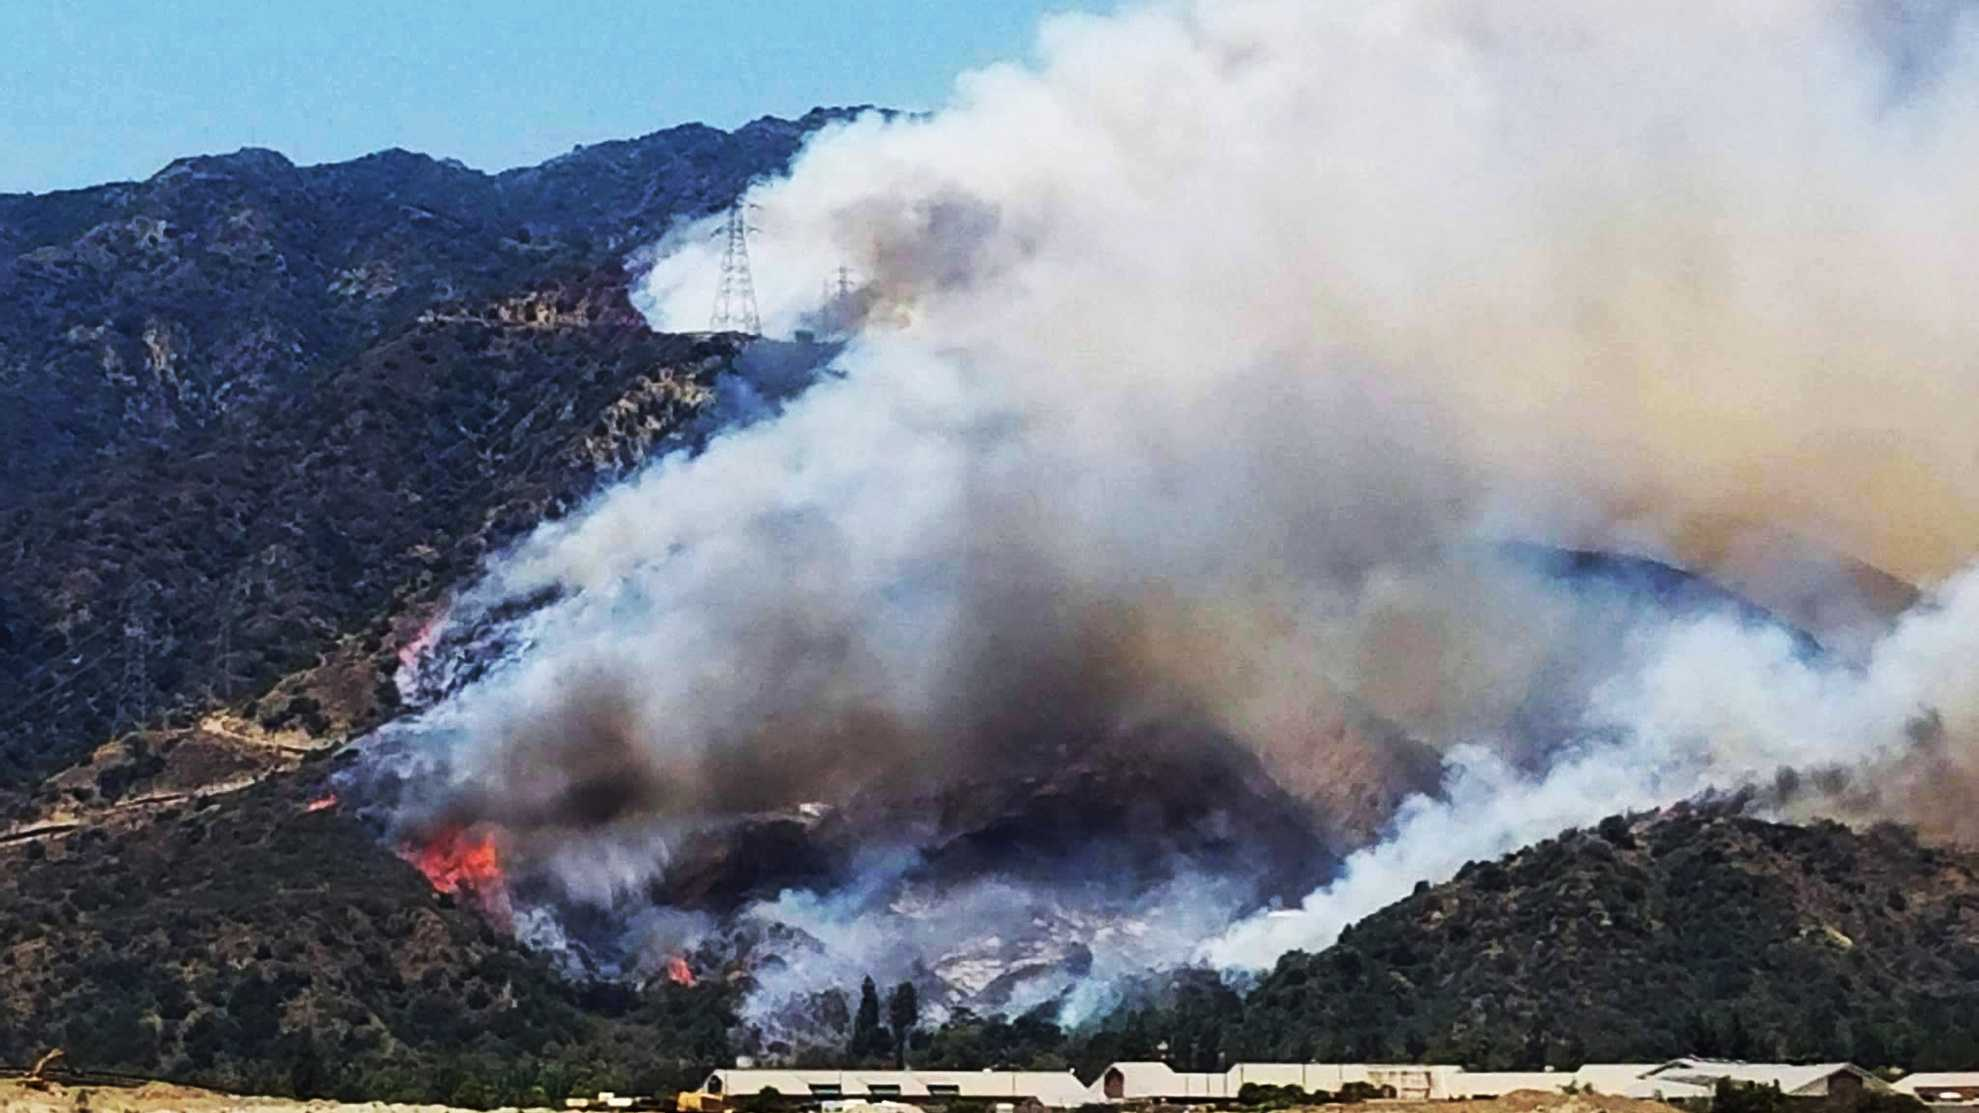 Reservoir Fire in Los Angeles County